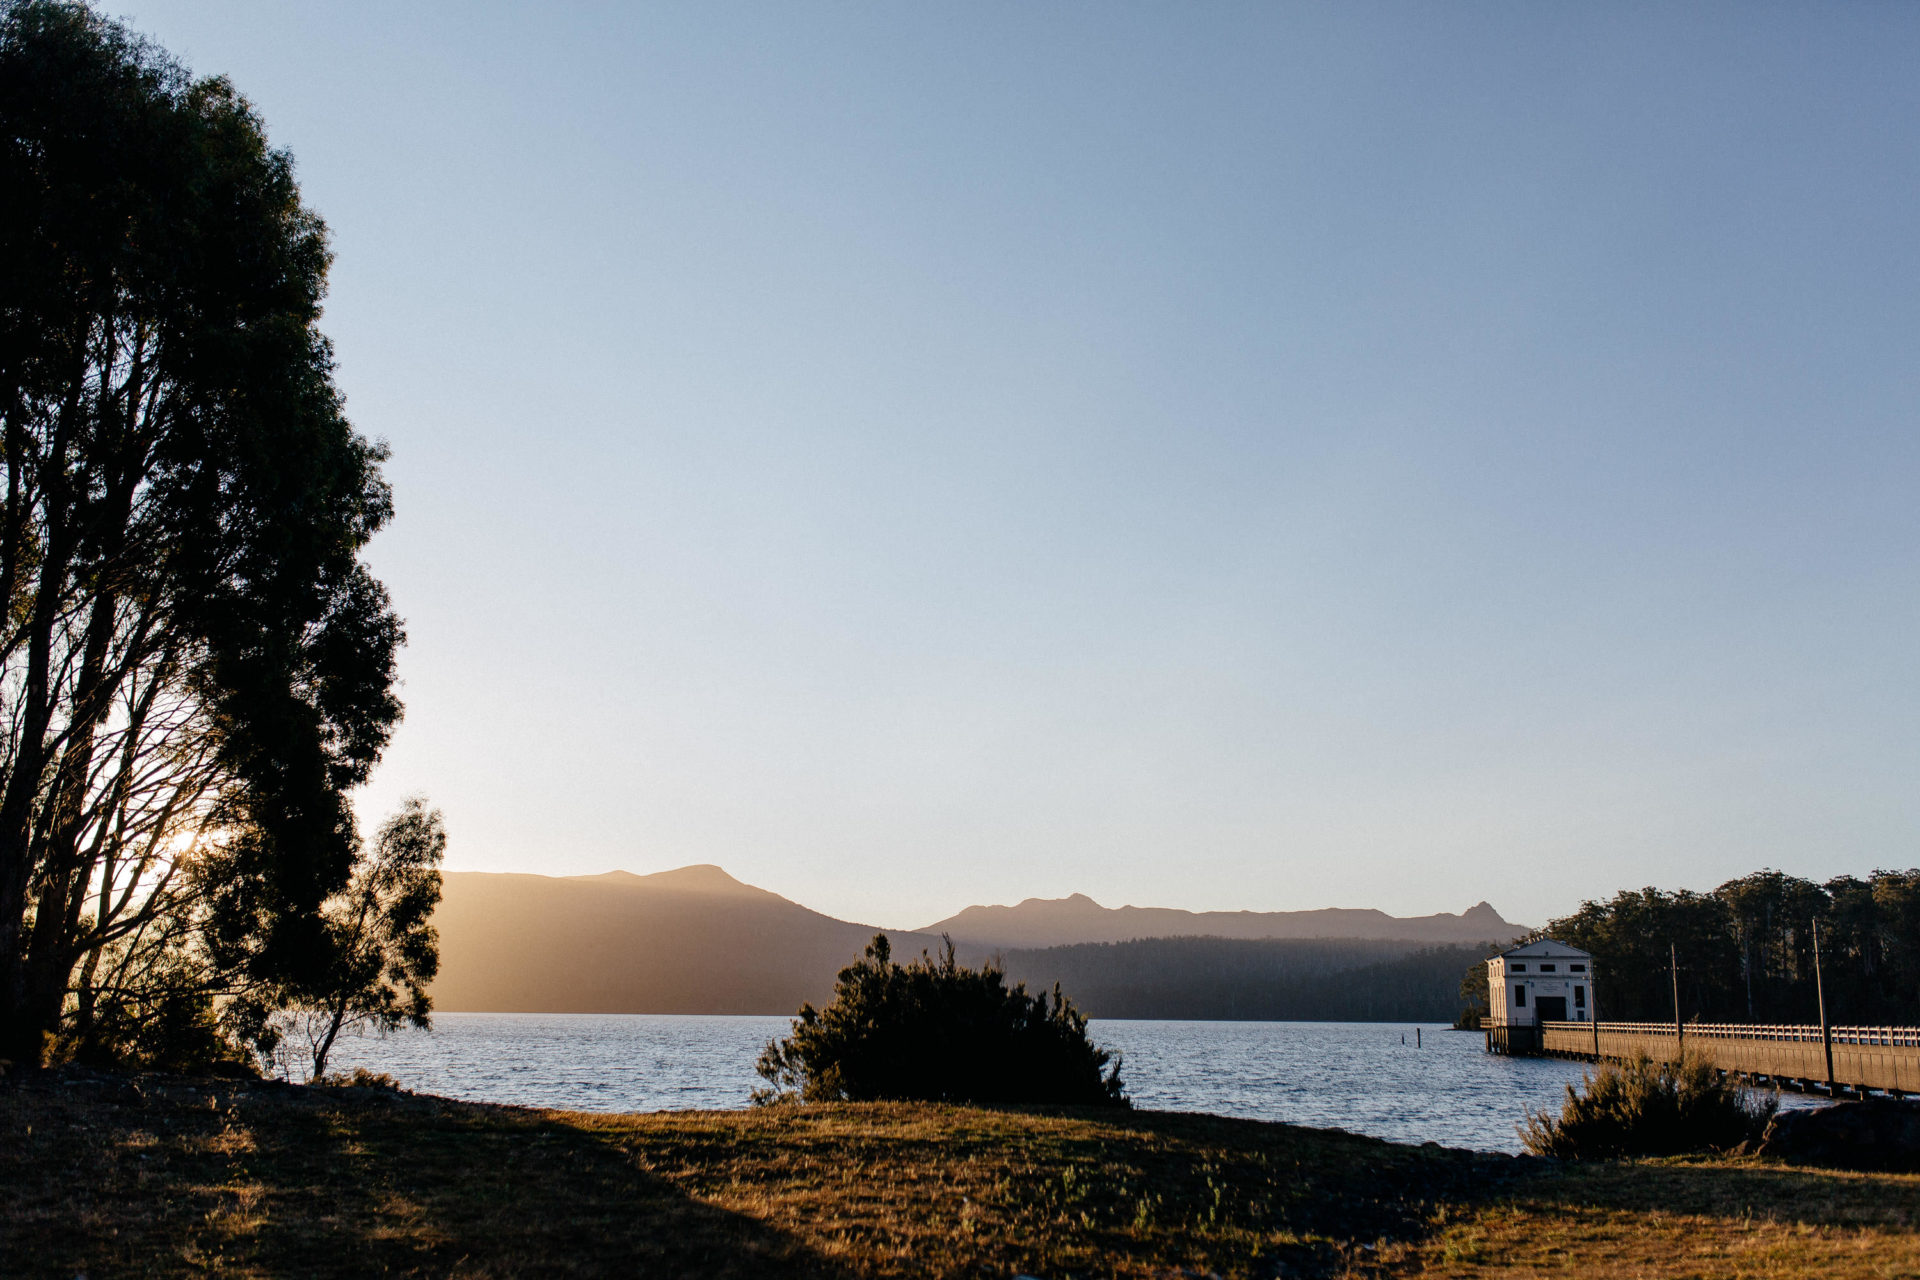 Hochzeitslocation Tasmanien Pumphouse Point-design hotel-kinderfreies Hotel-Hochzeitslocation-Elopement